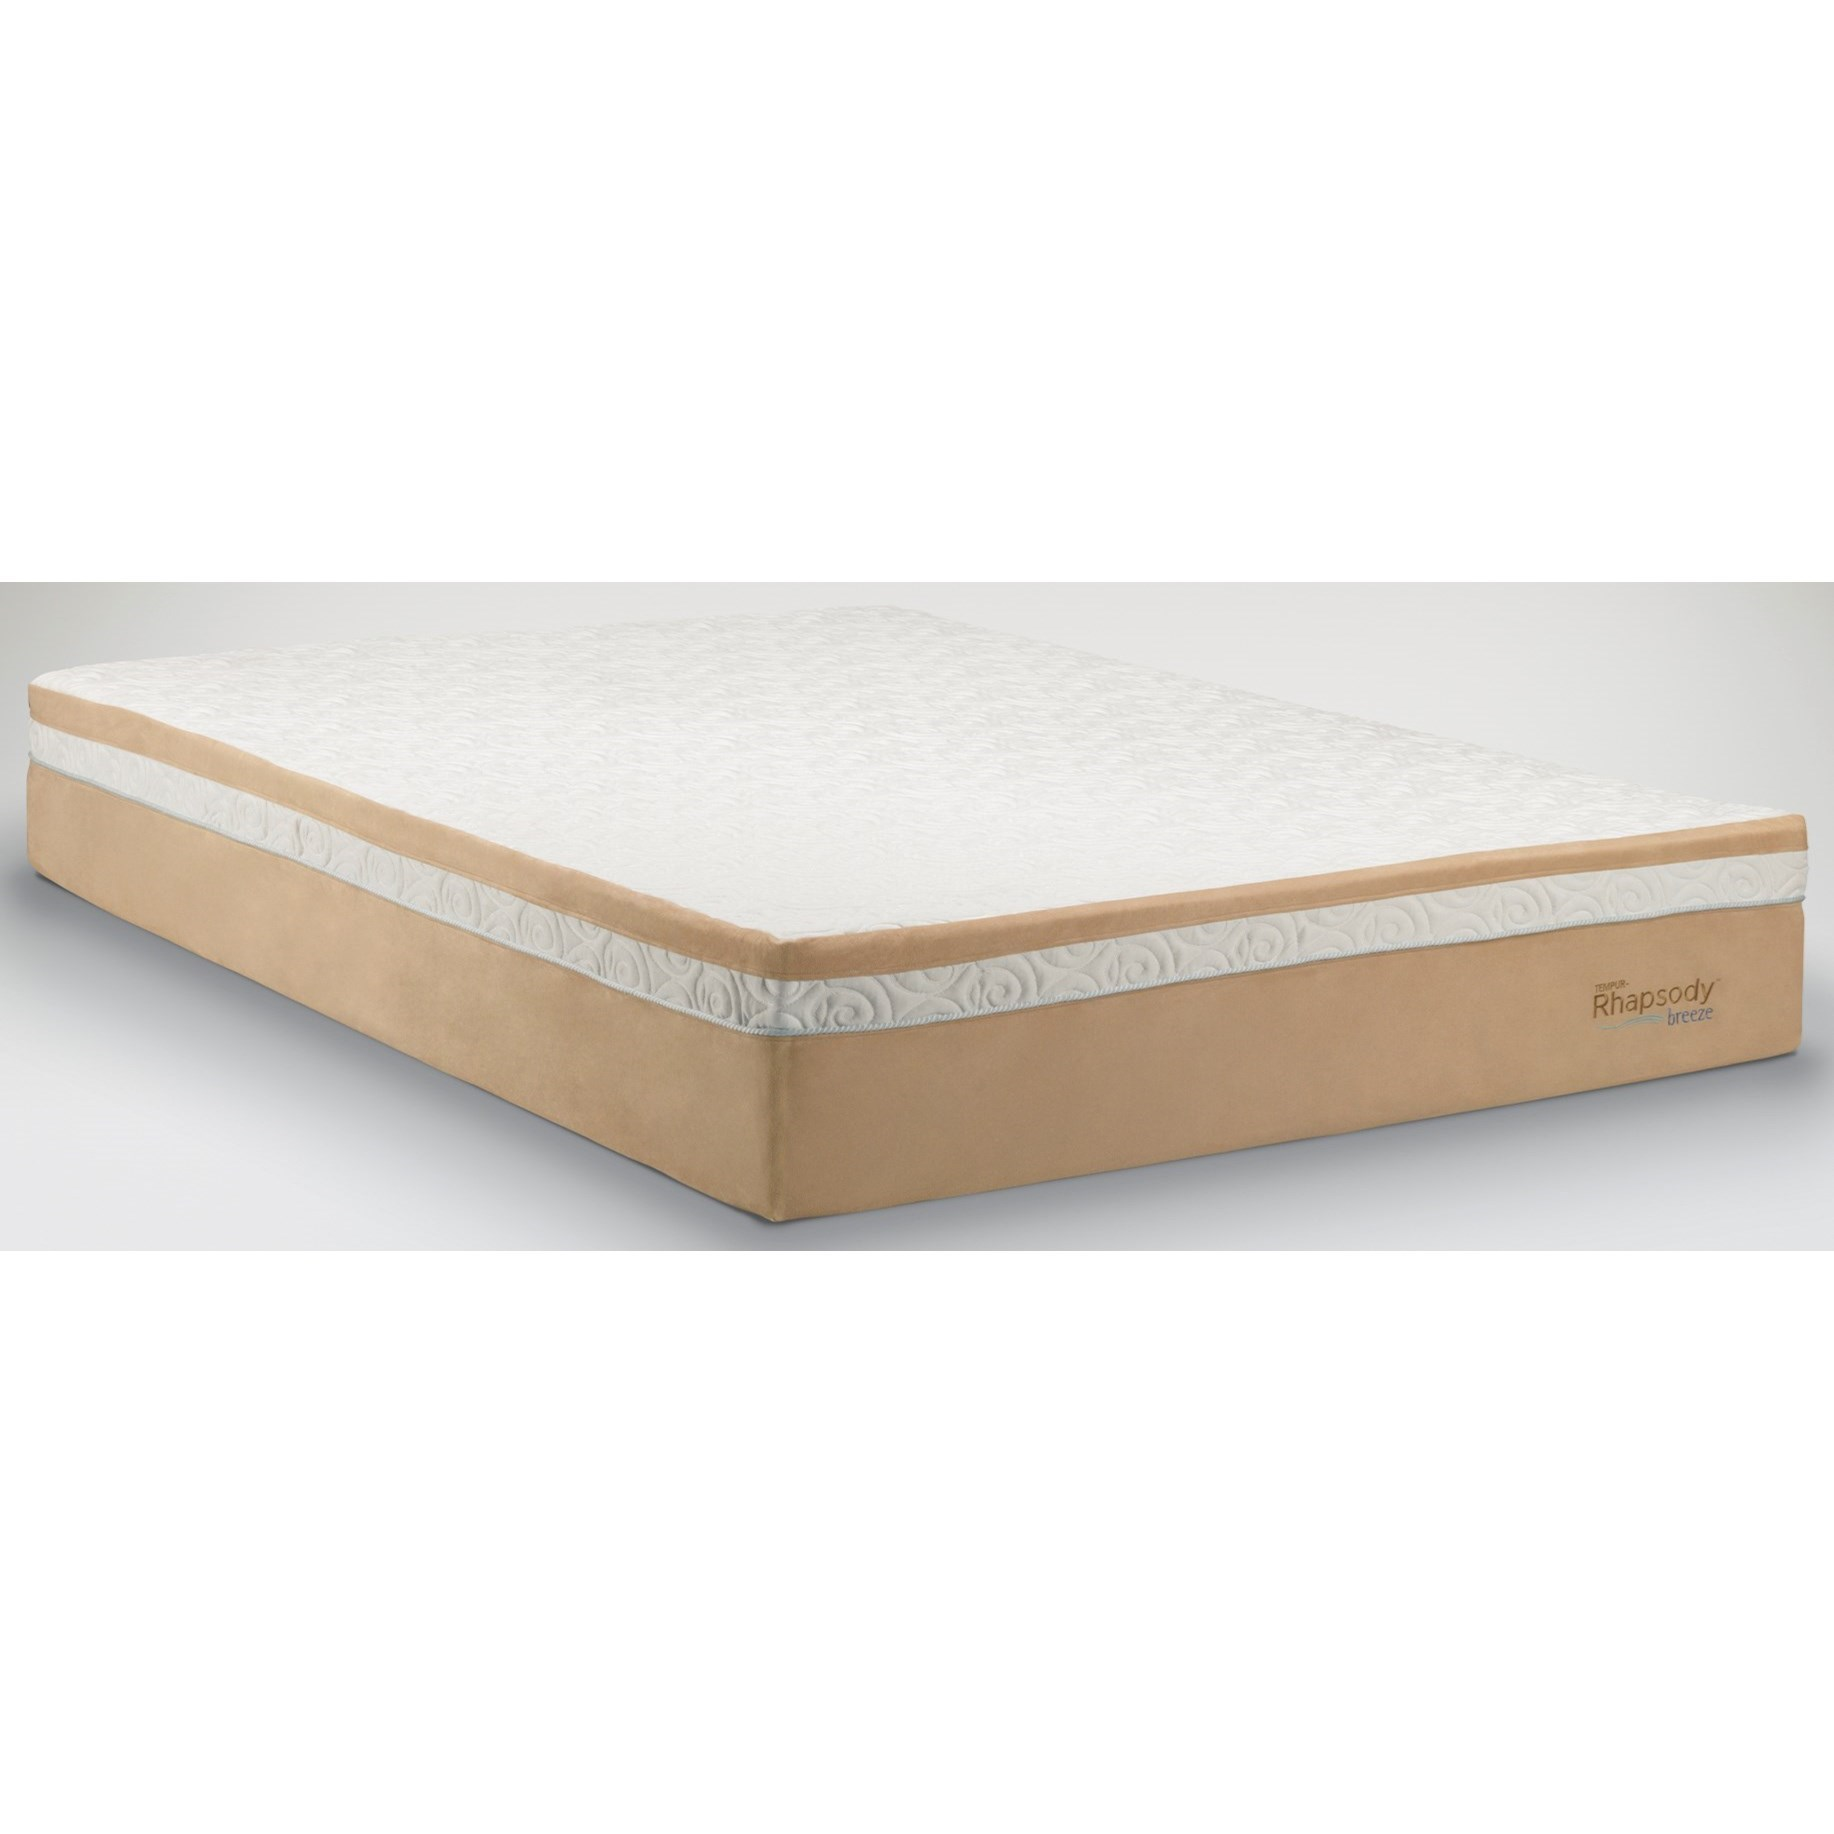 Tempur-Pedic® TEMPUR-Contour™ Rhapsody Breeze Twin XL Medium Firm Mattress - Item Number: 10104120